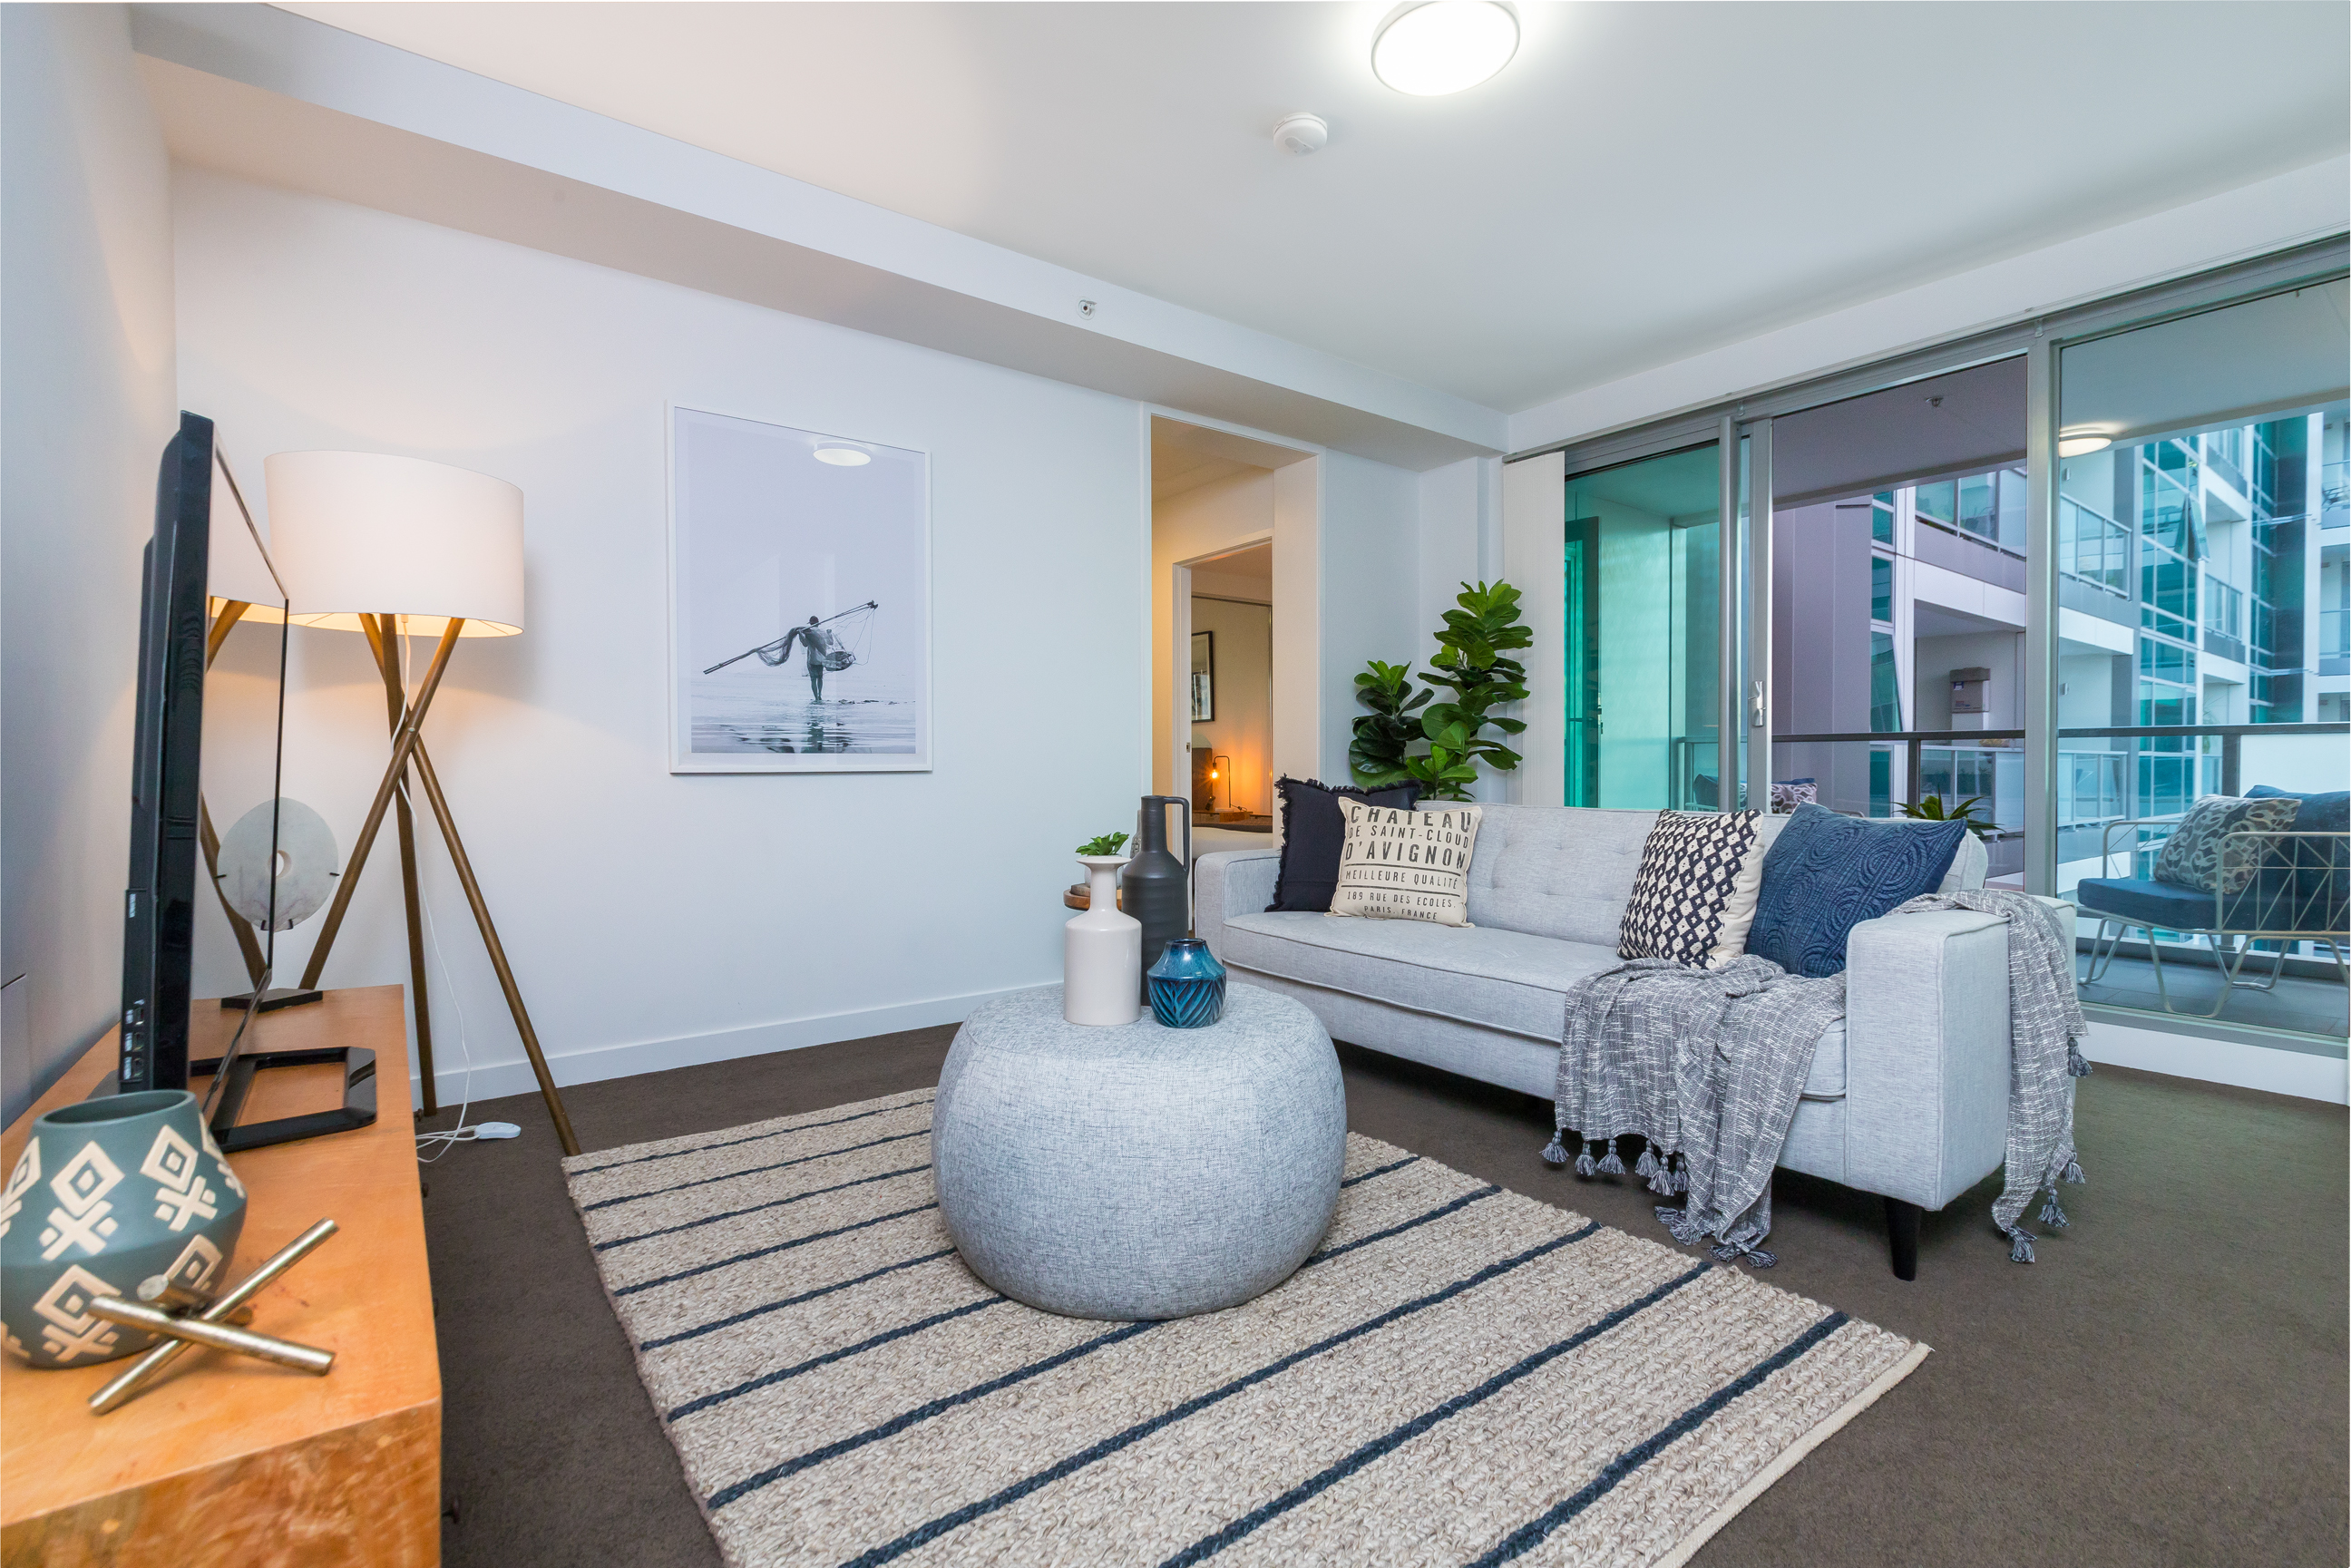 VIEWINGS BY PRIVATE APPOINTMENT